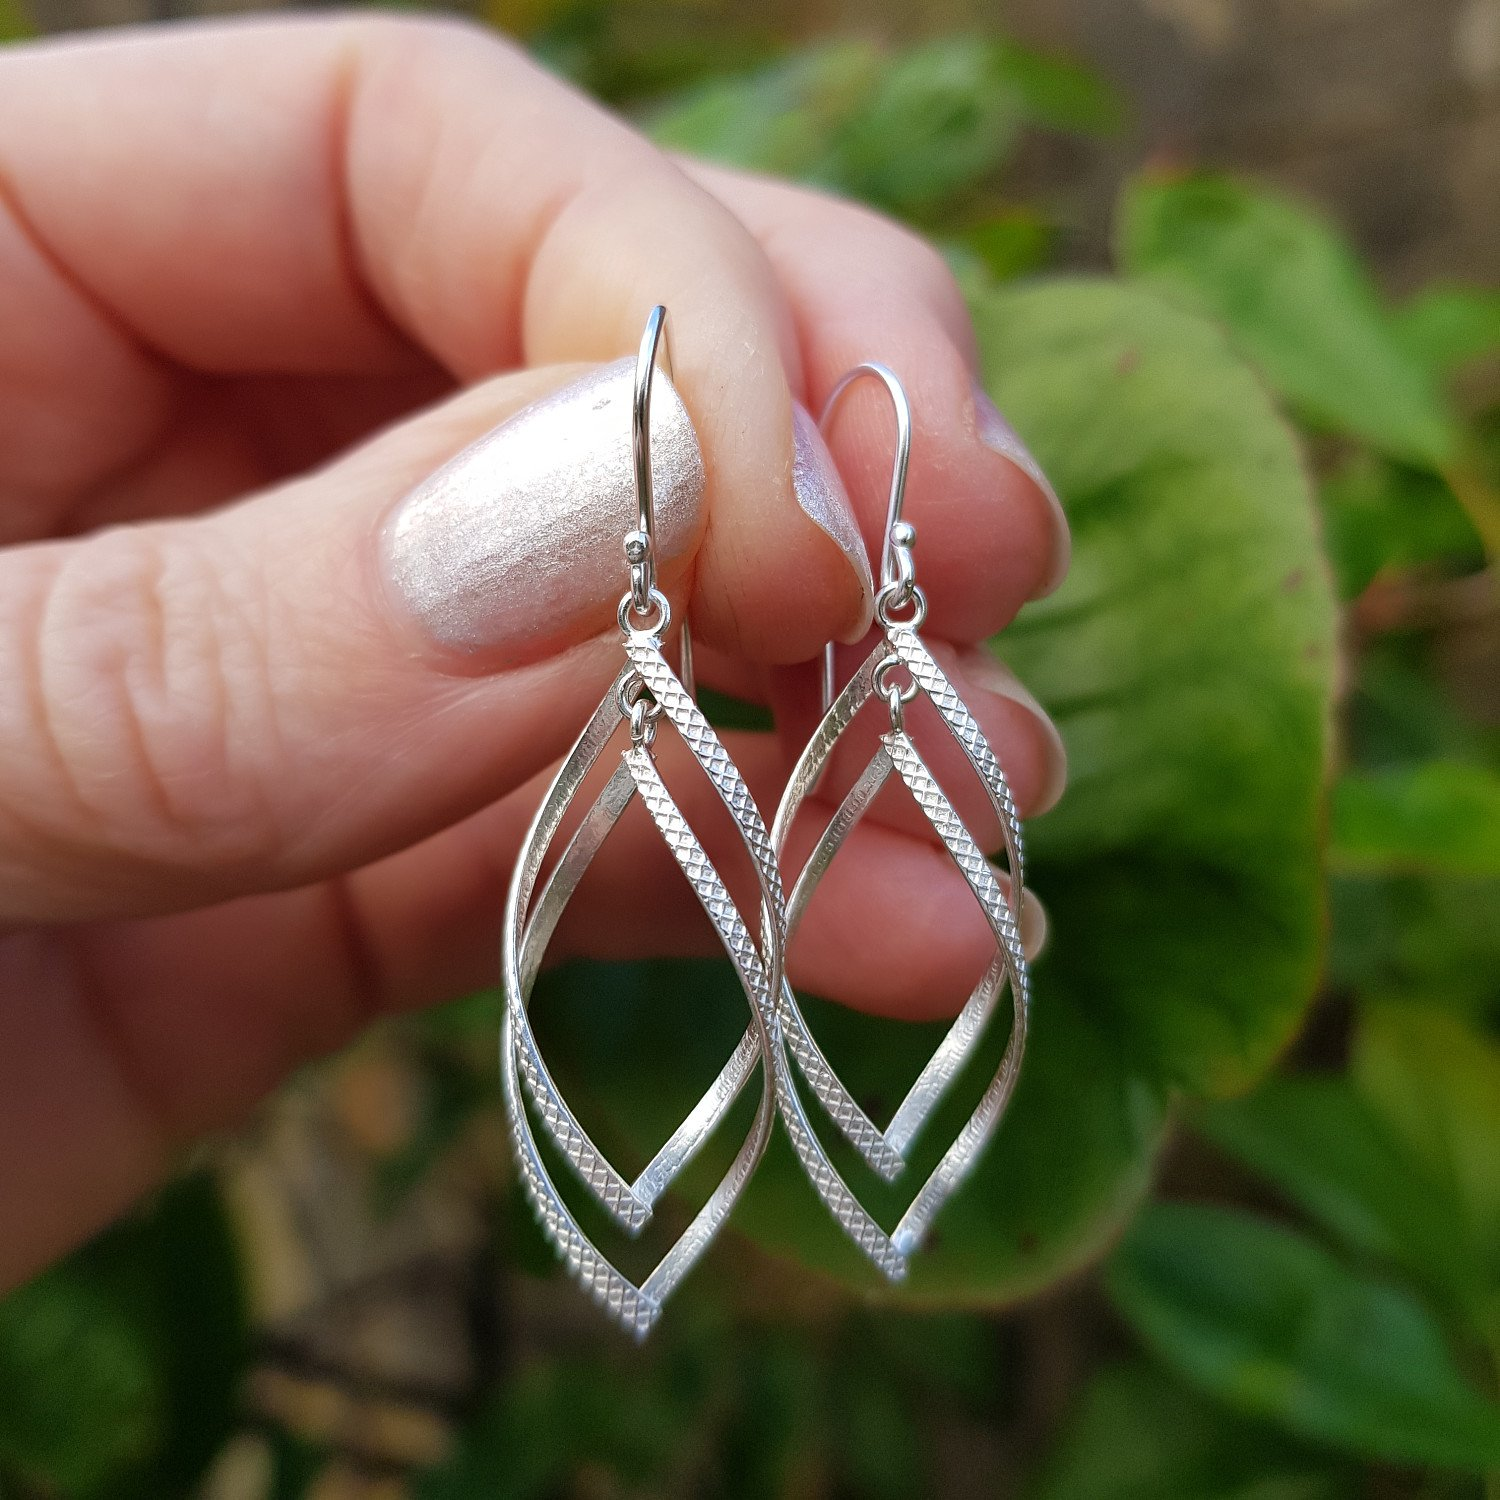 Jewellery gifts for under £50 from Callibeau Jewellery